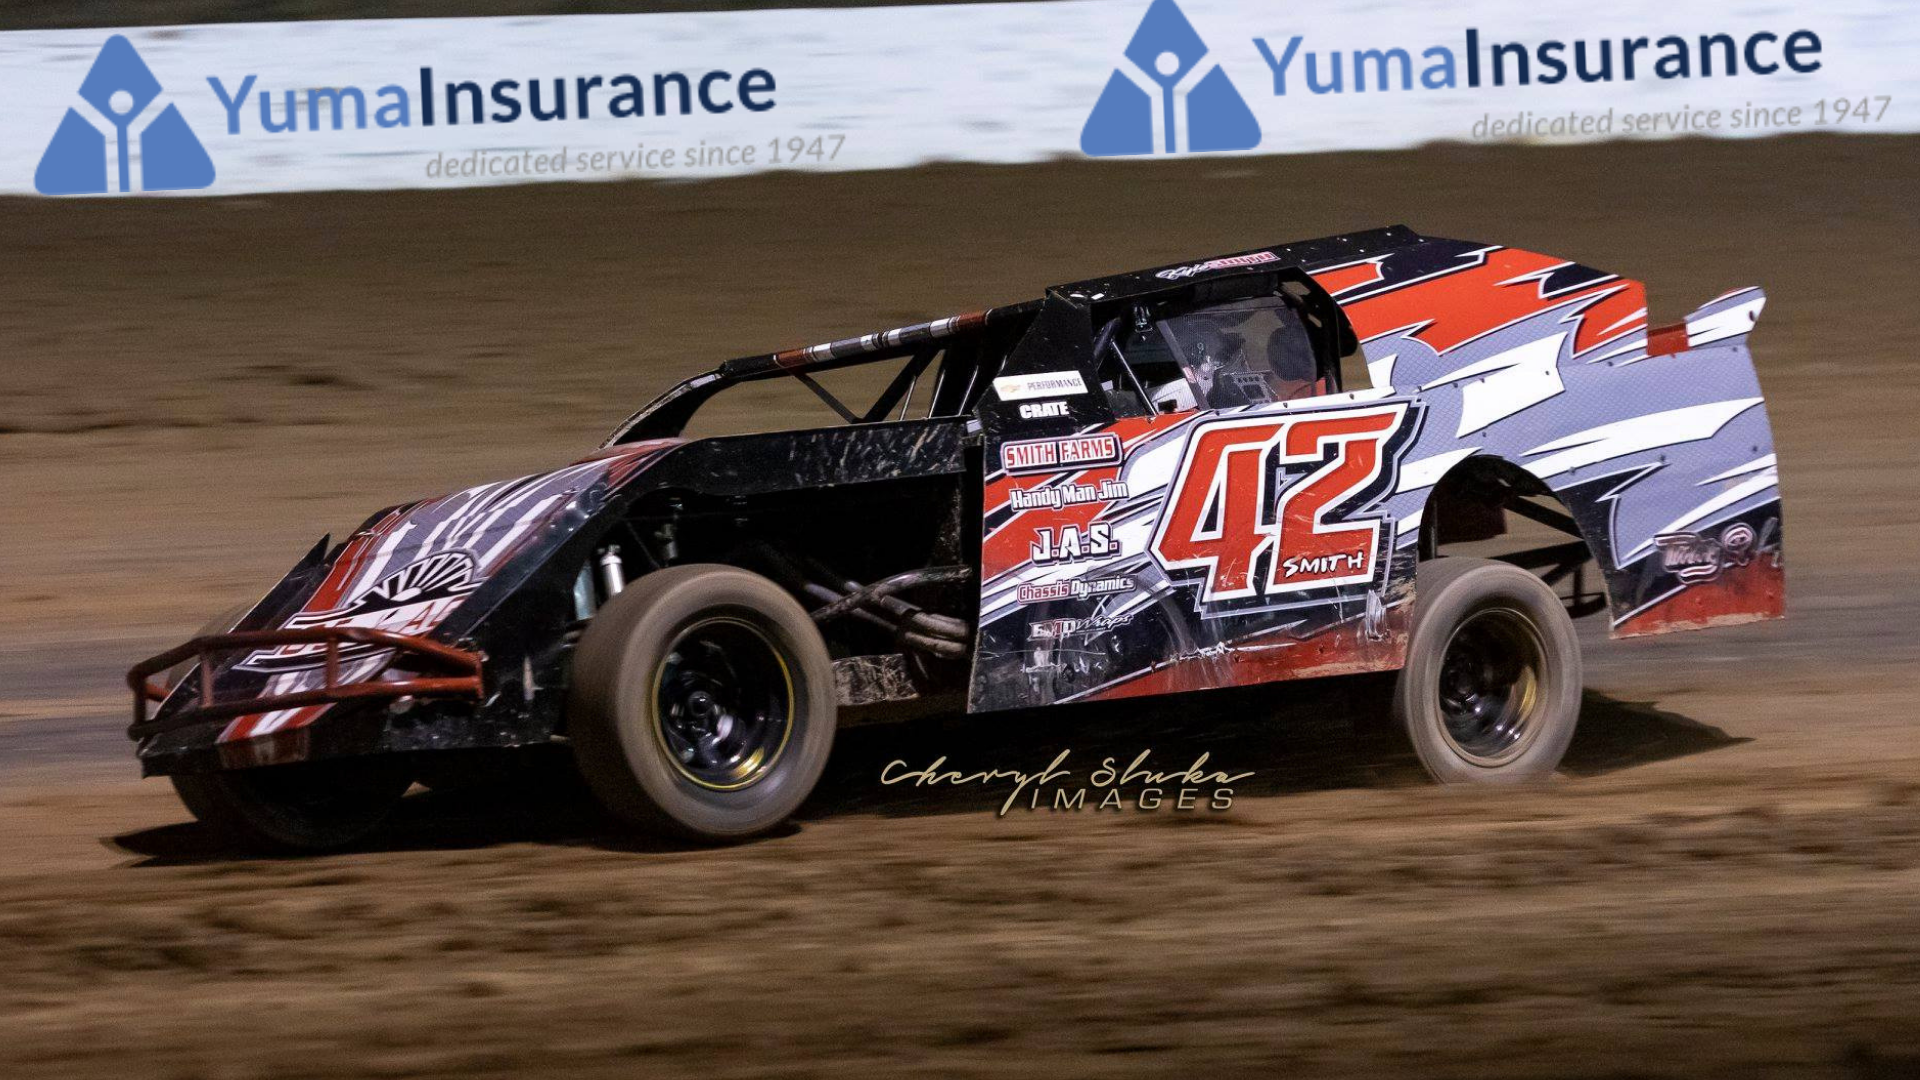 Yuma Insurance IMCA Sport Mods Points thru 4/20/19